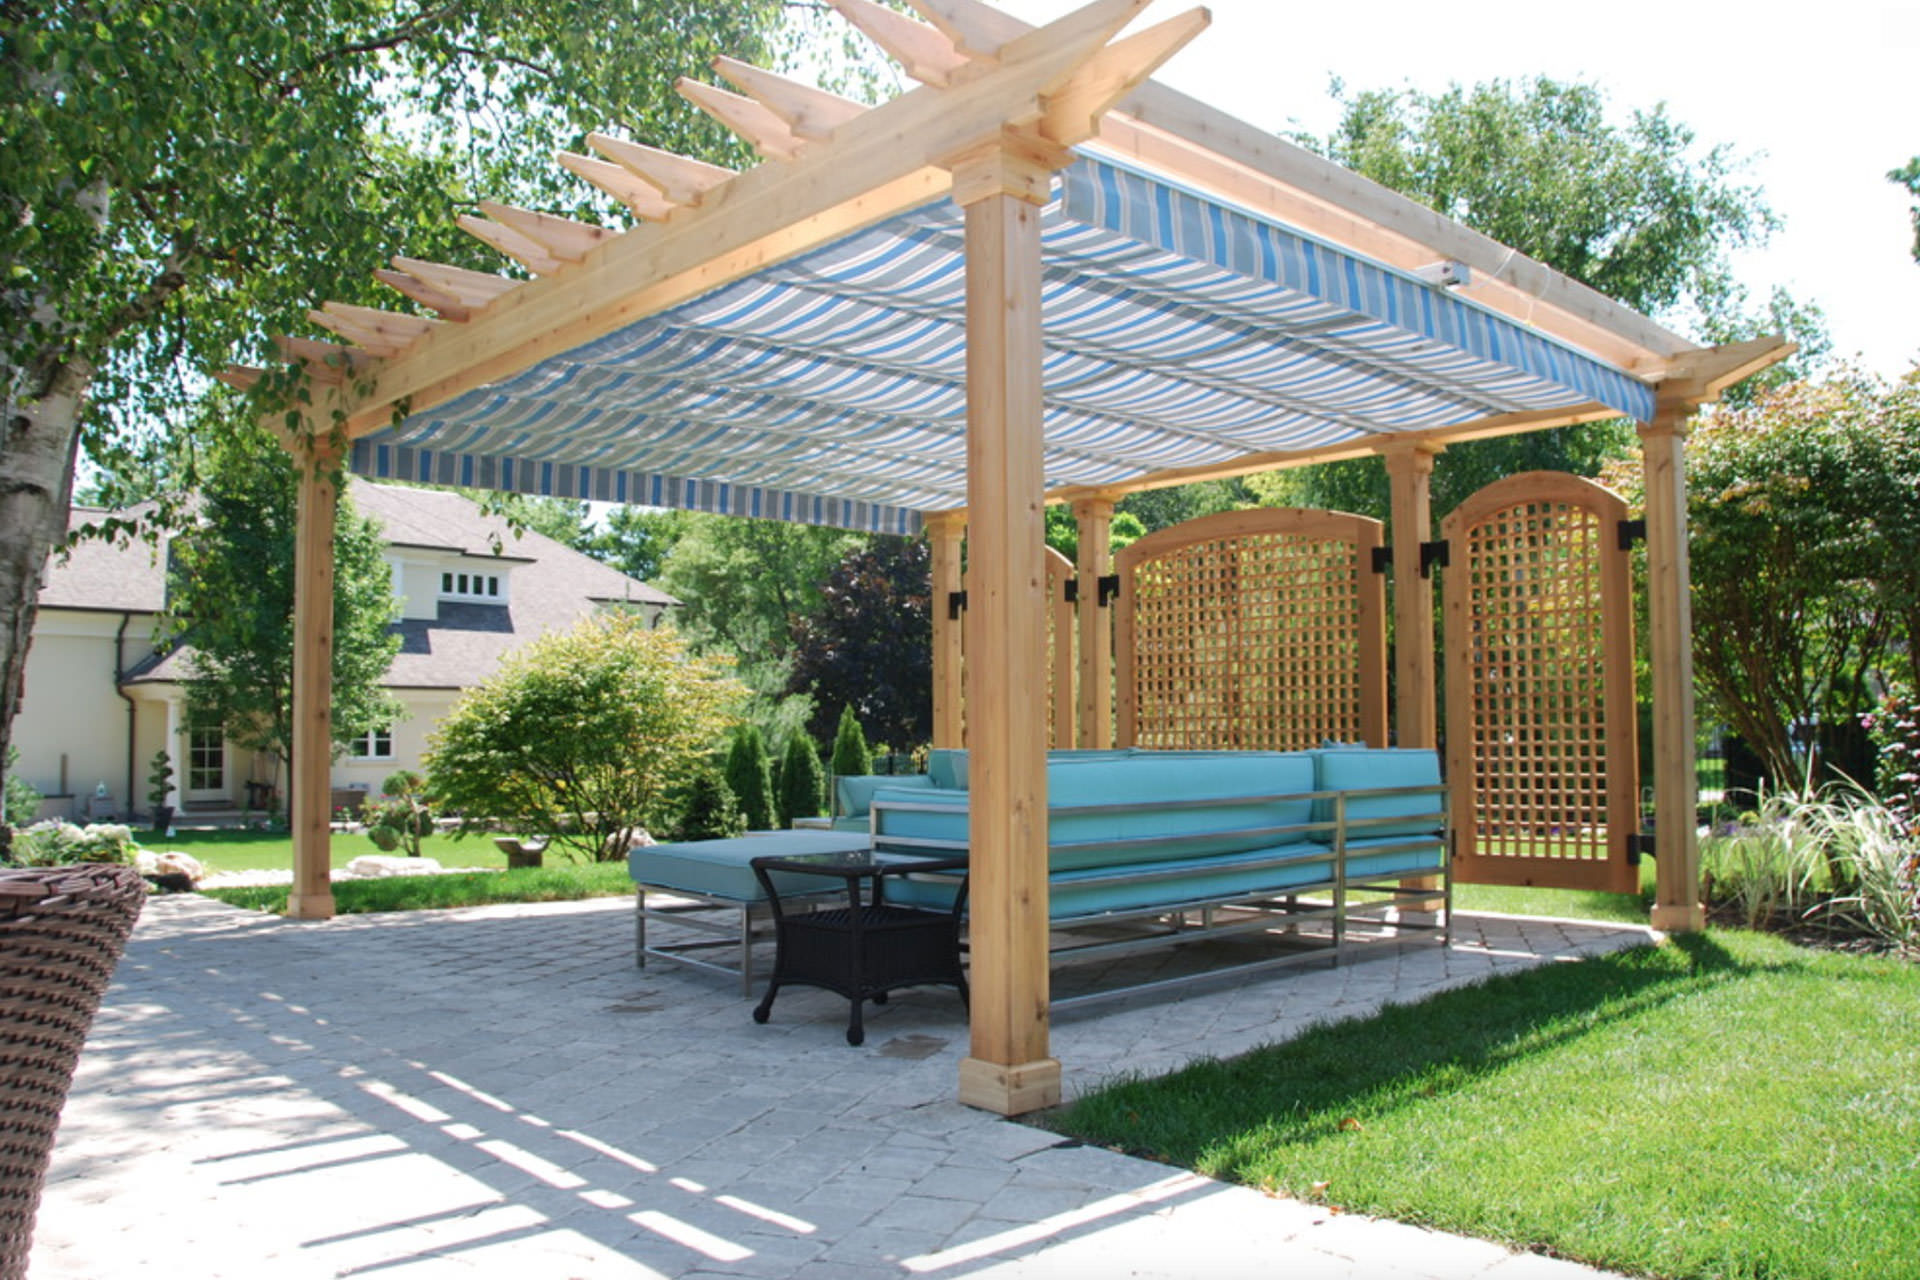 retractable canopy or awning whats the difference